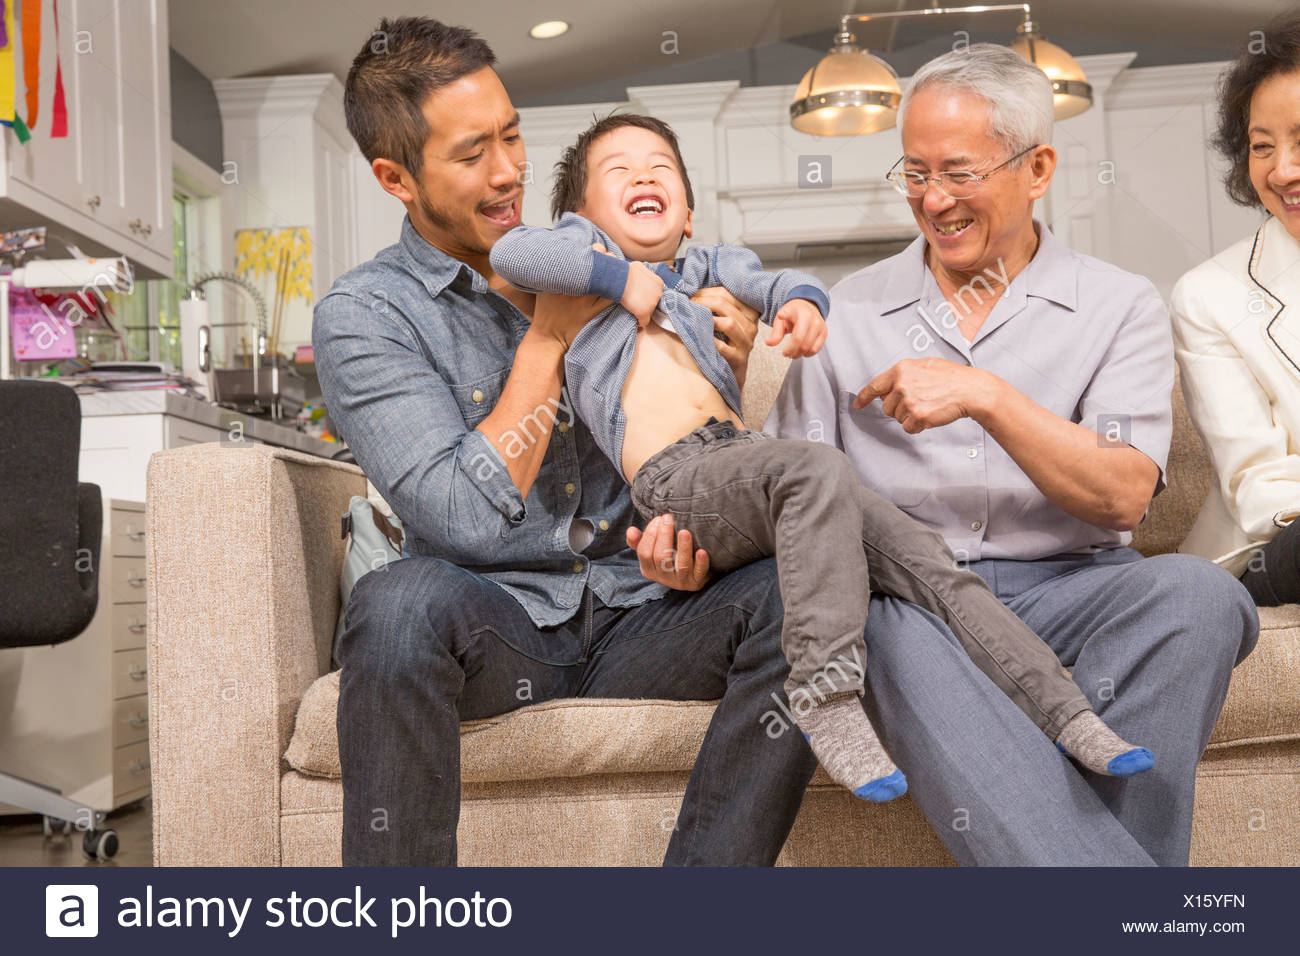 Three generation family playing with young boy on sofa - Stock Image